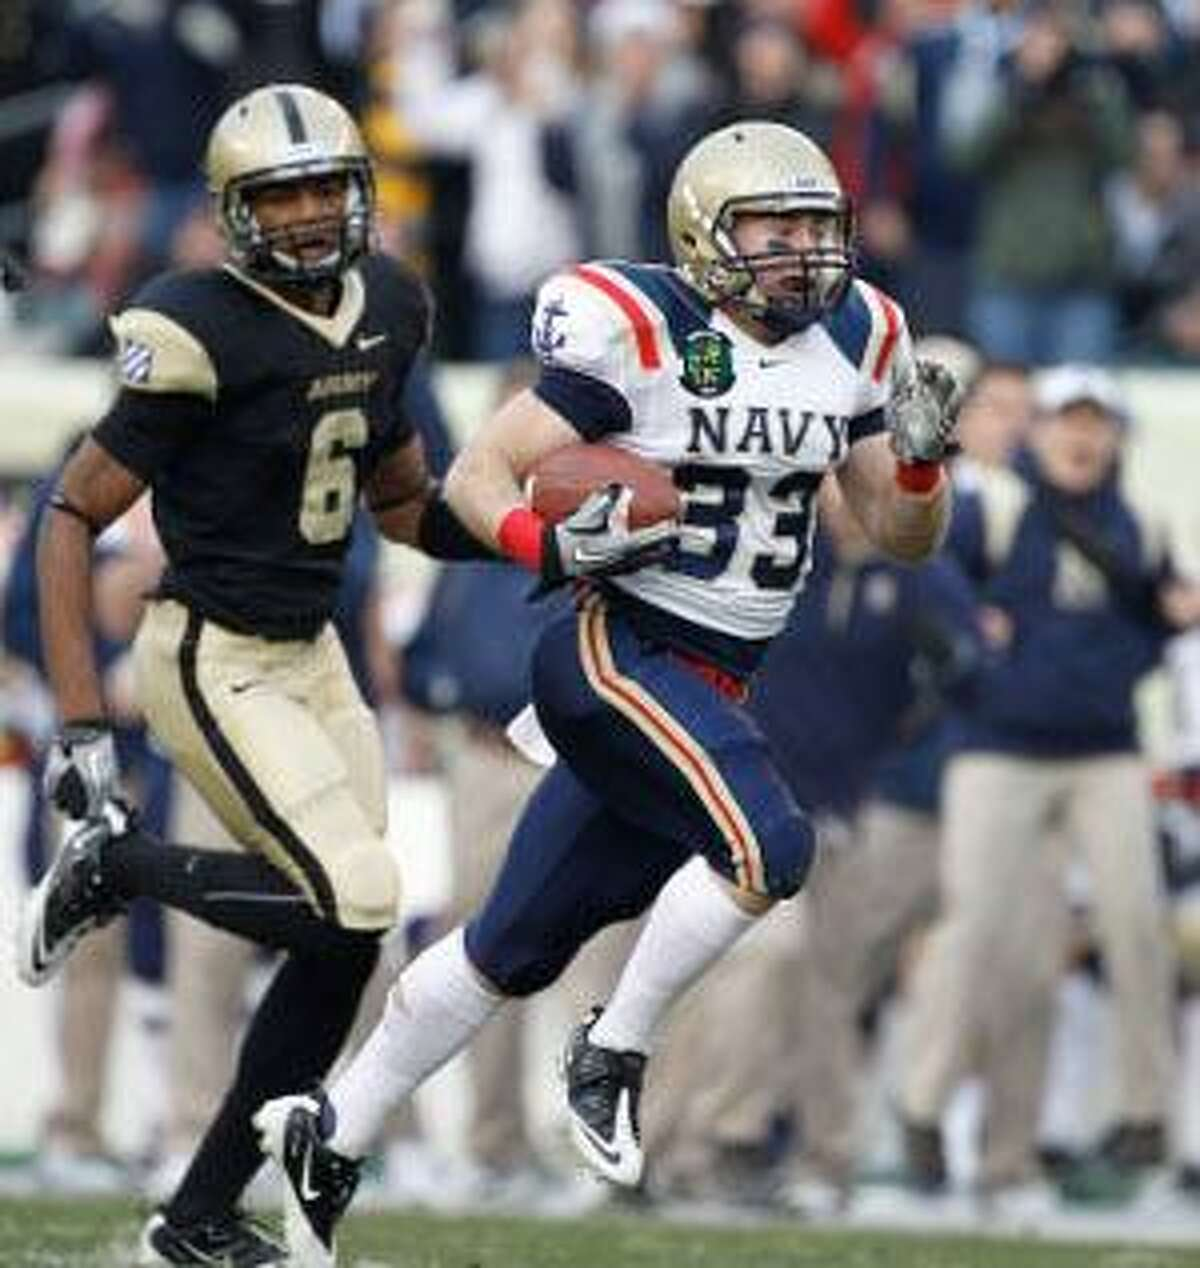 AP Navy running back John Howell, right, runs past Army cornerback Donovan Travis to score a touchdown in the first half of Saturday's game in Philadelphia. The Midshipmen won 31-17.